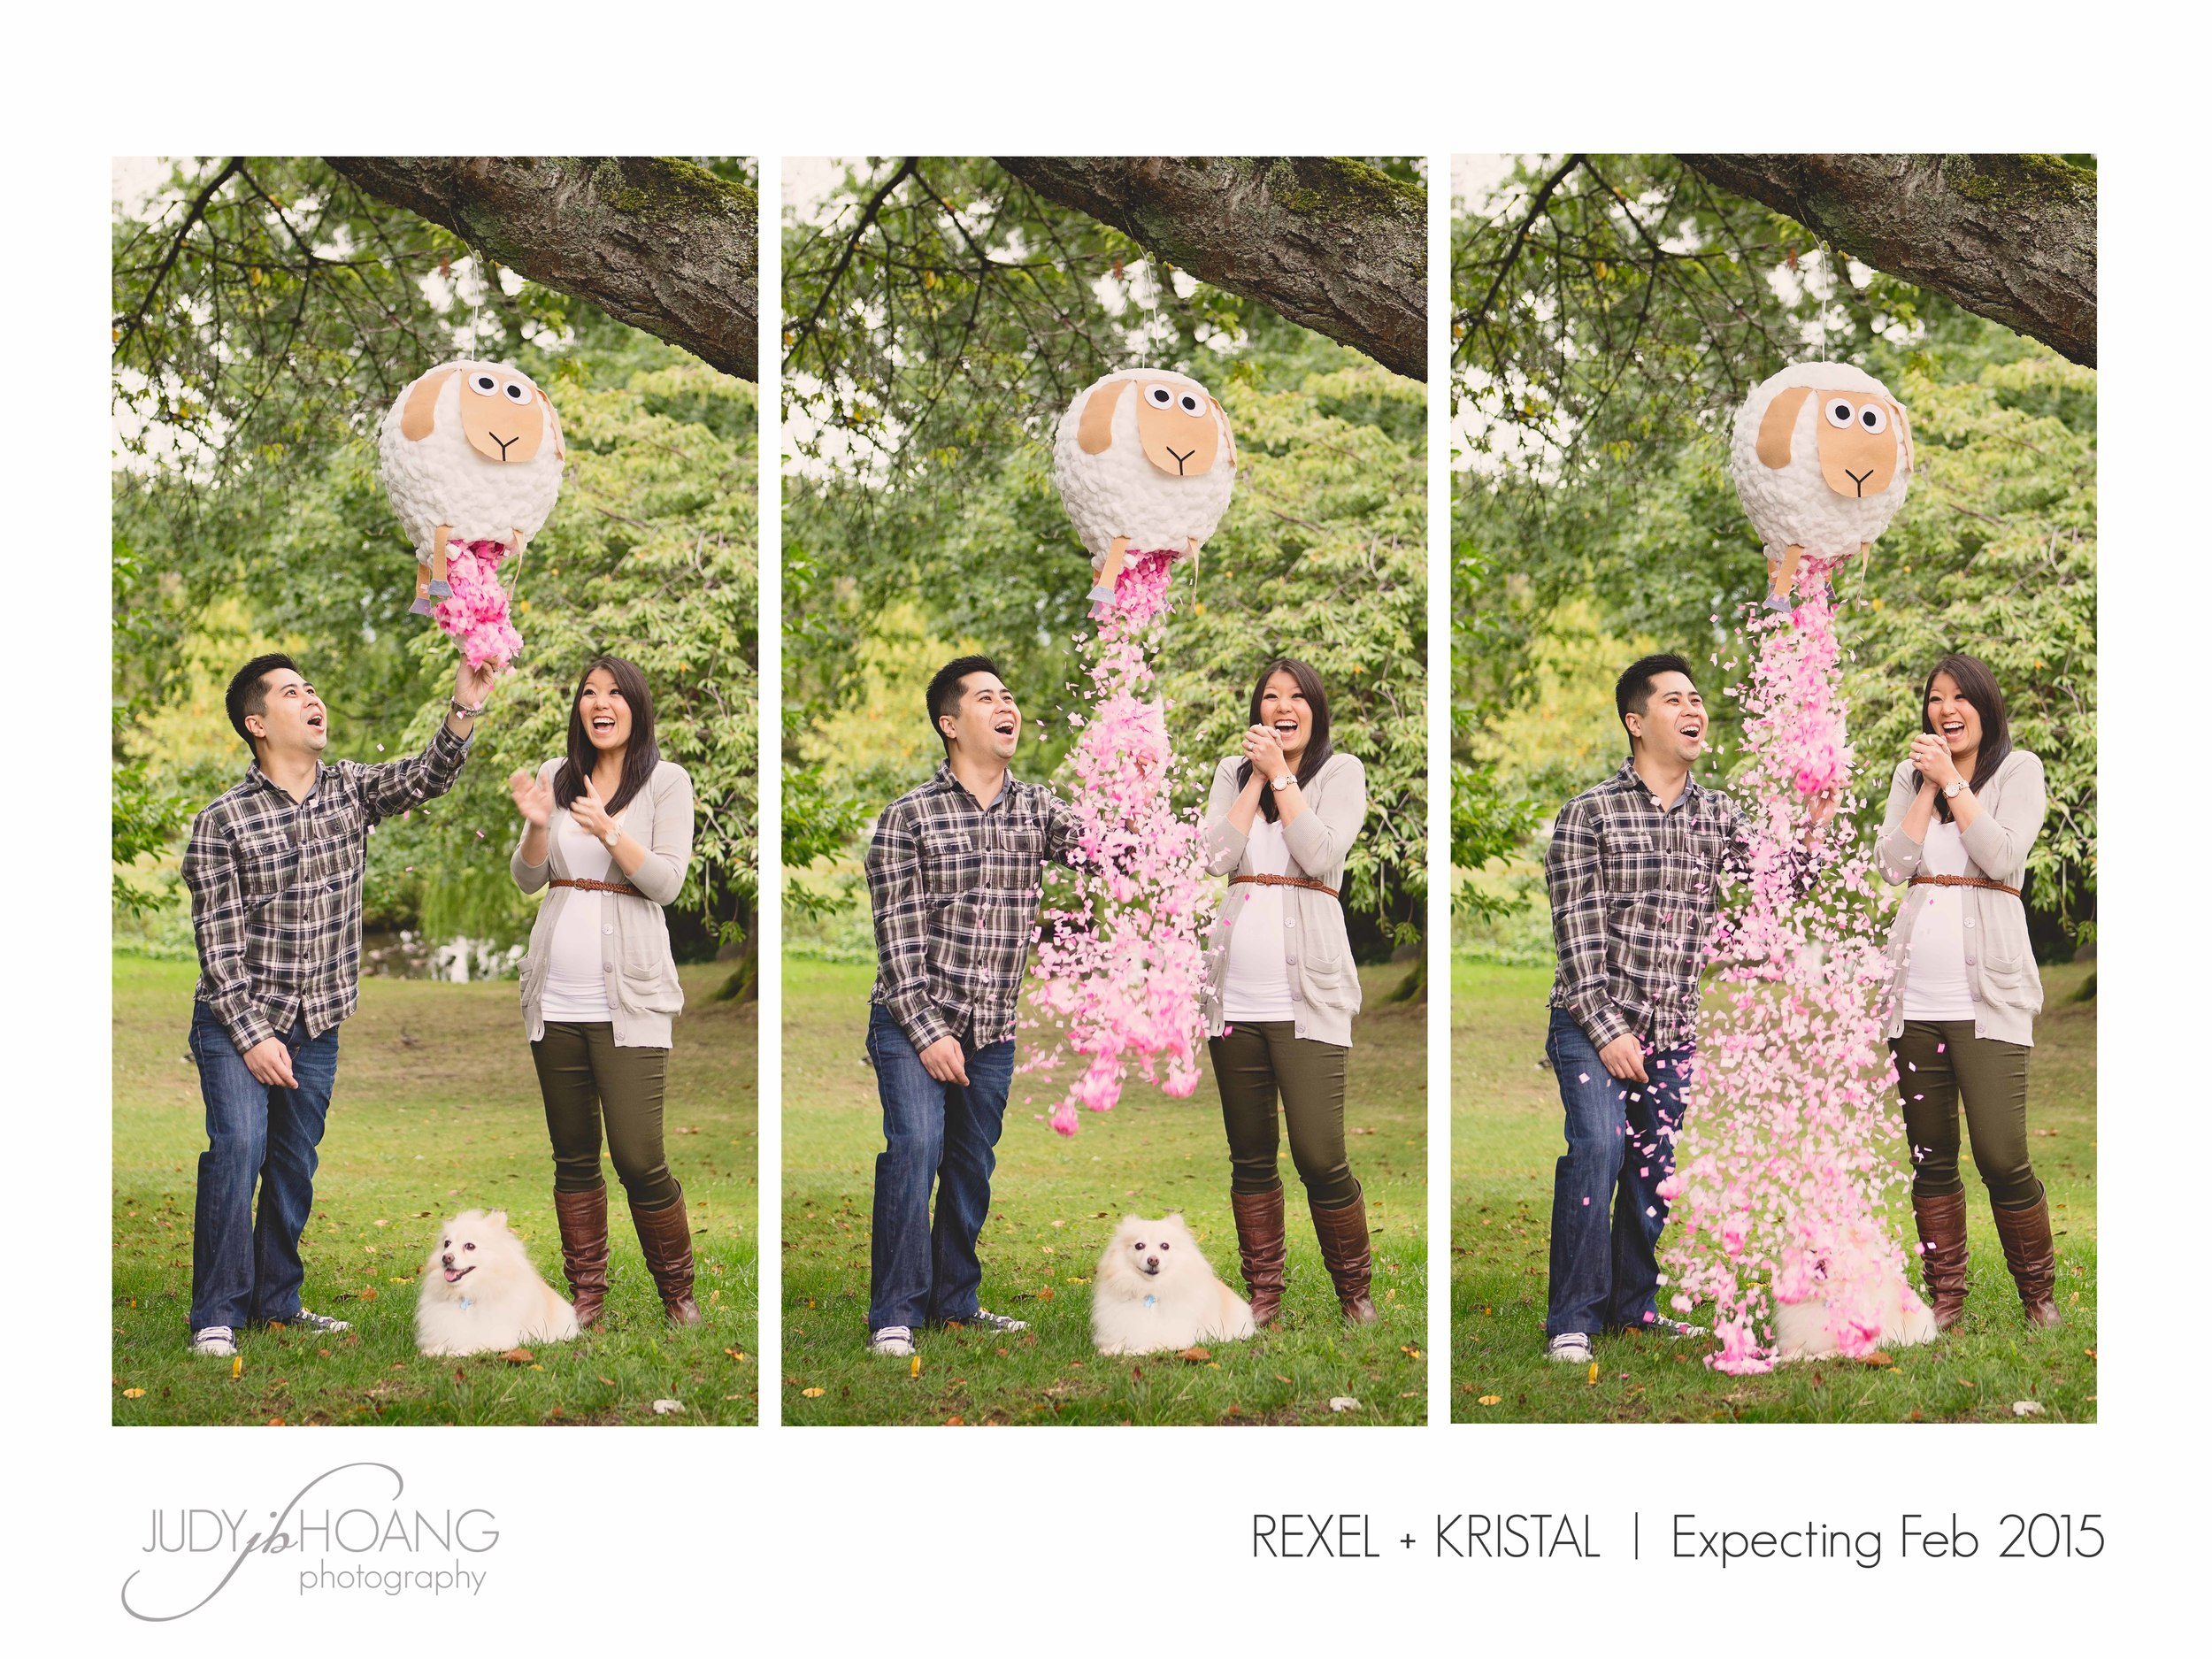 Judy Hoang Photography - Rex and Kristal Gender Reveal 2.jpg